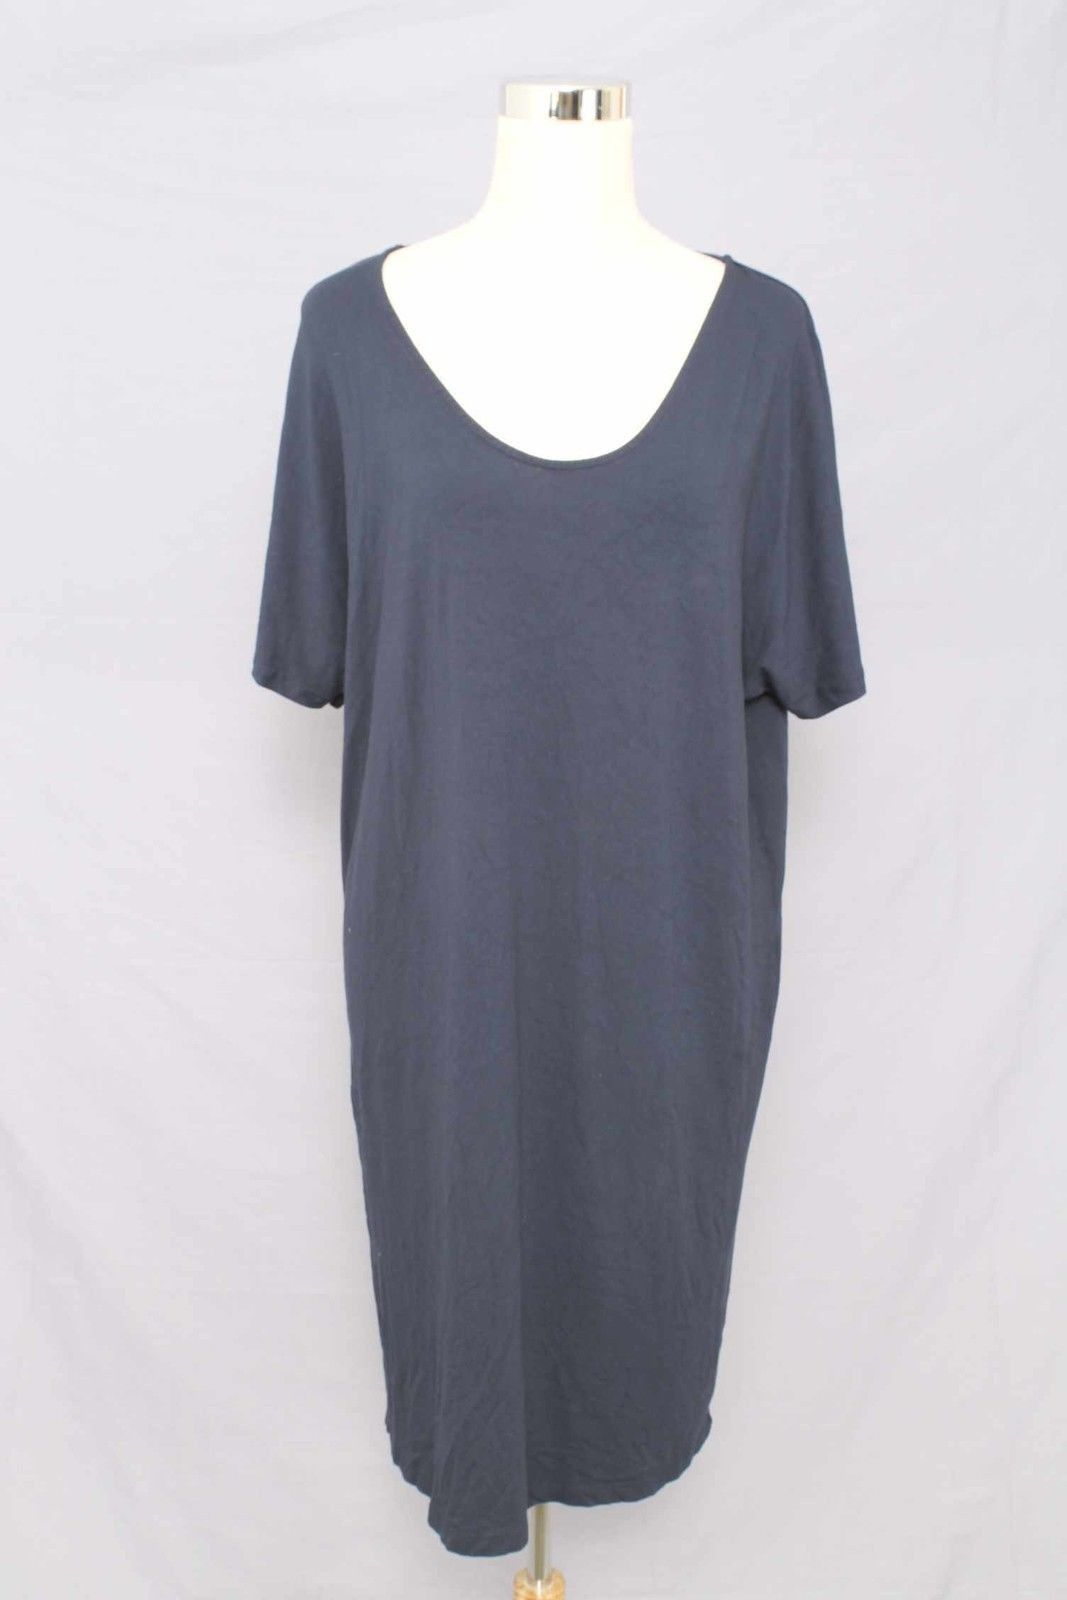 Landsu end navy blue short sleeve dress with scoop neckline size